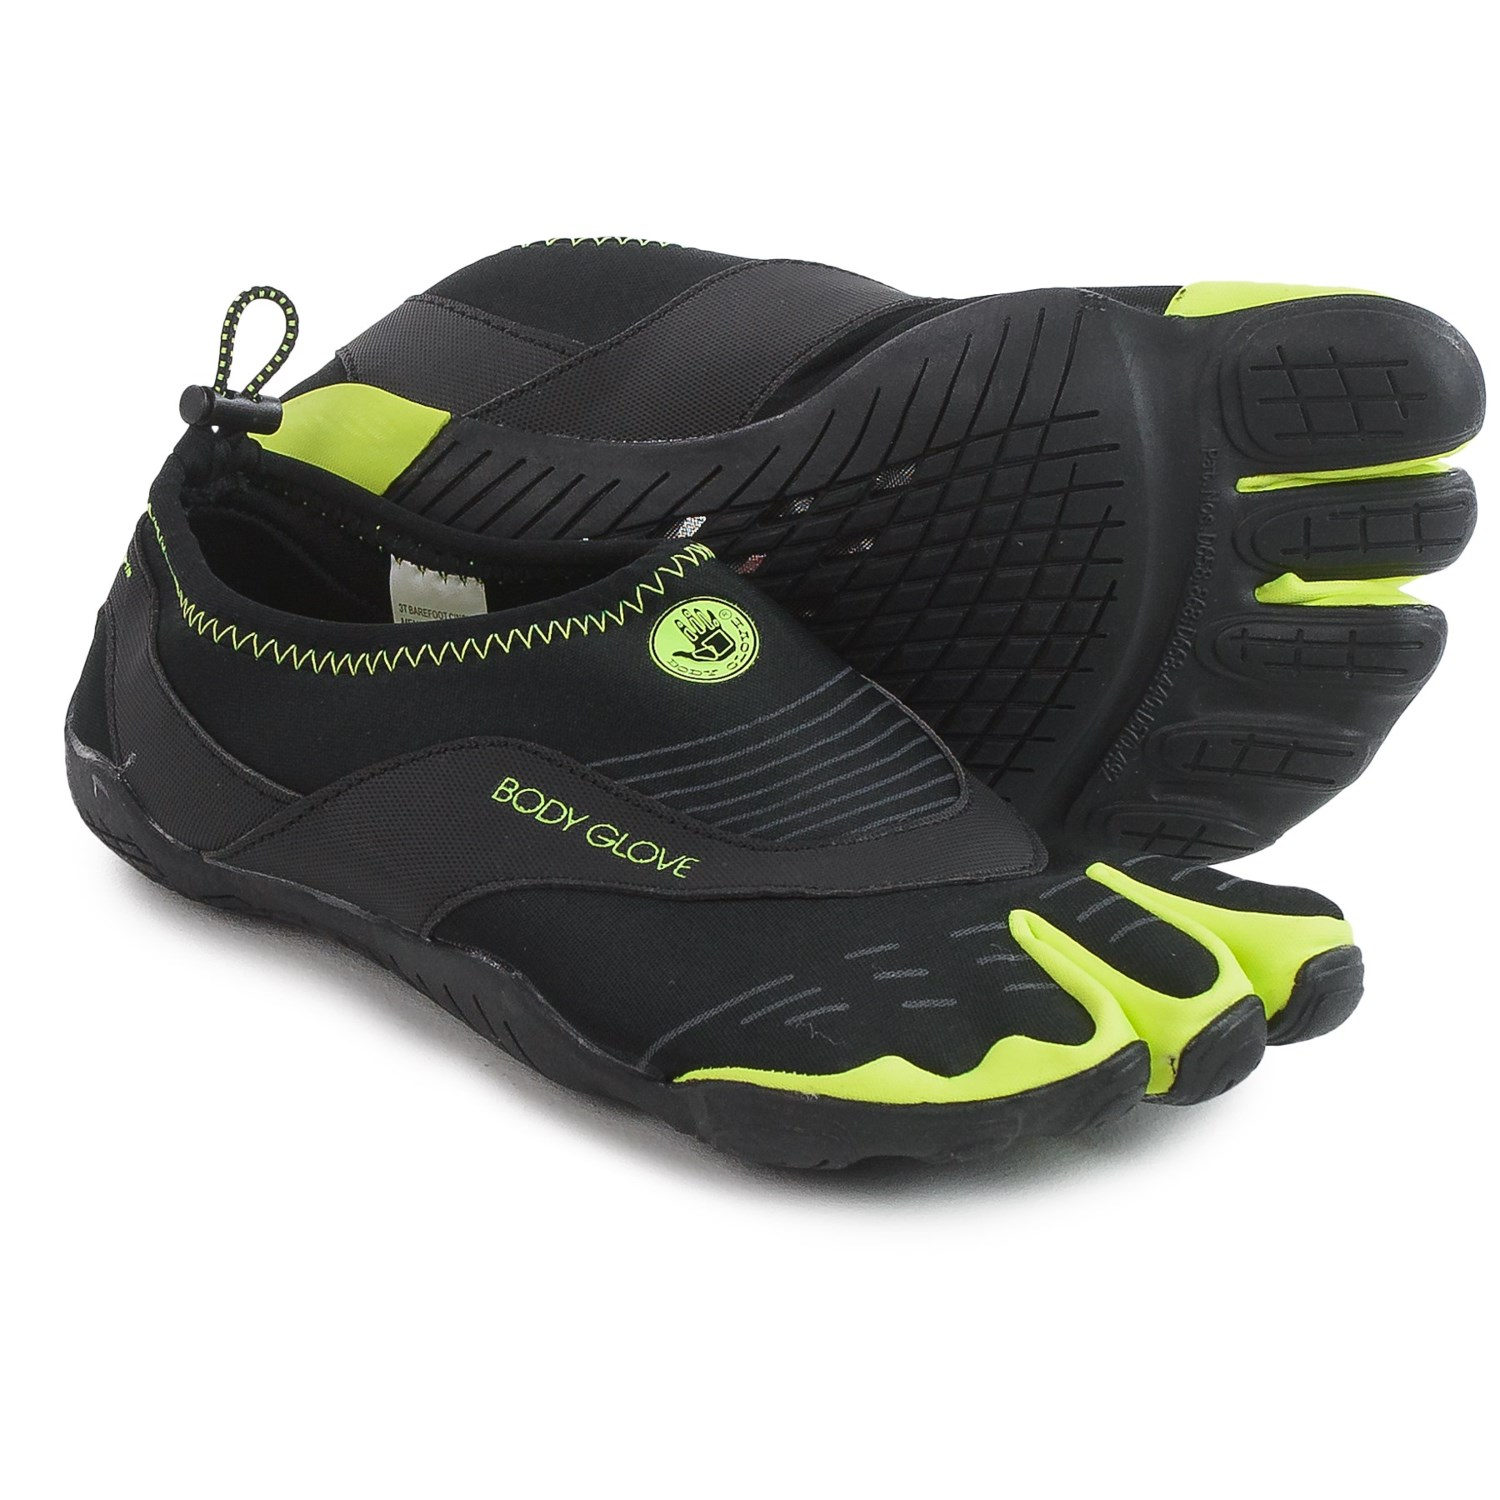 ecc978527e5d Body Glove 3T Barefoot Cinch Water Shoes (For Men)  6XuXh0607756 ...